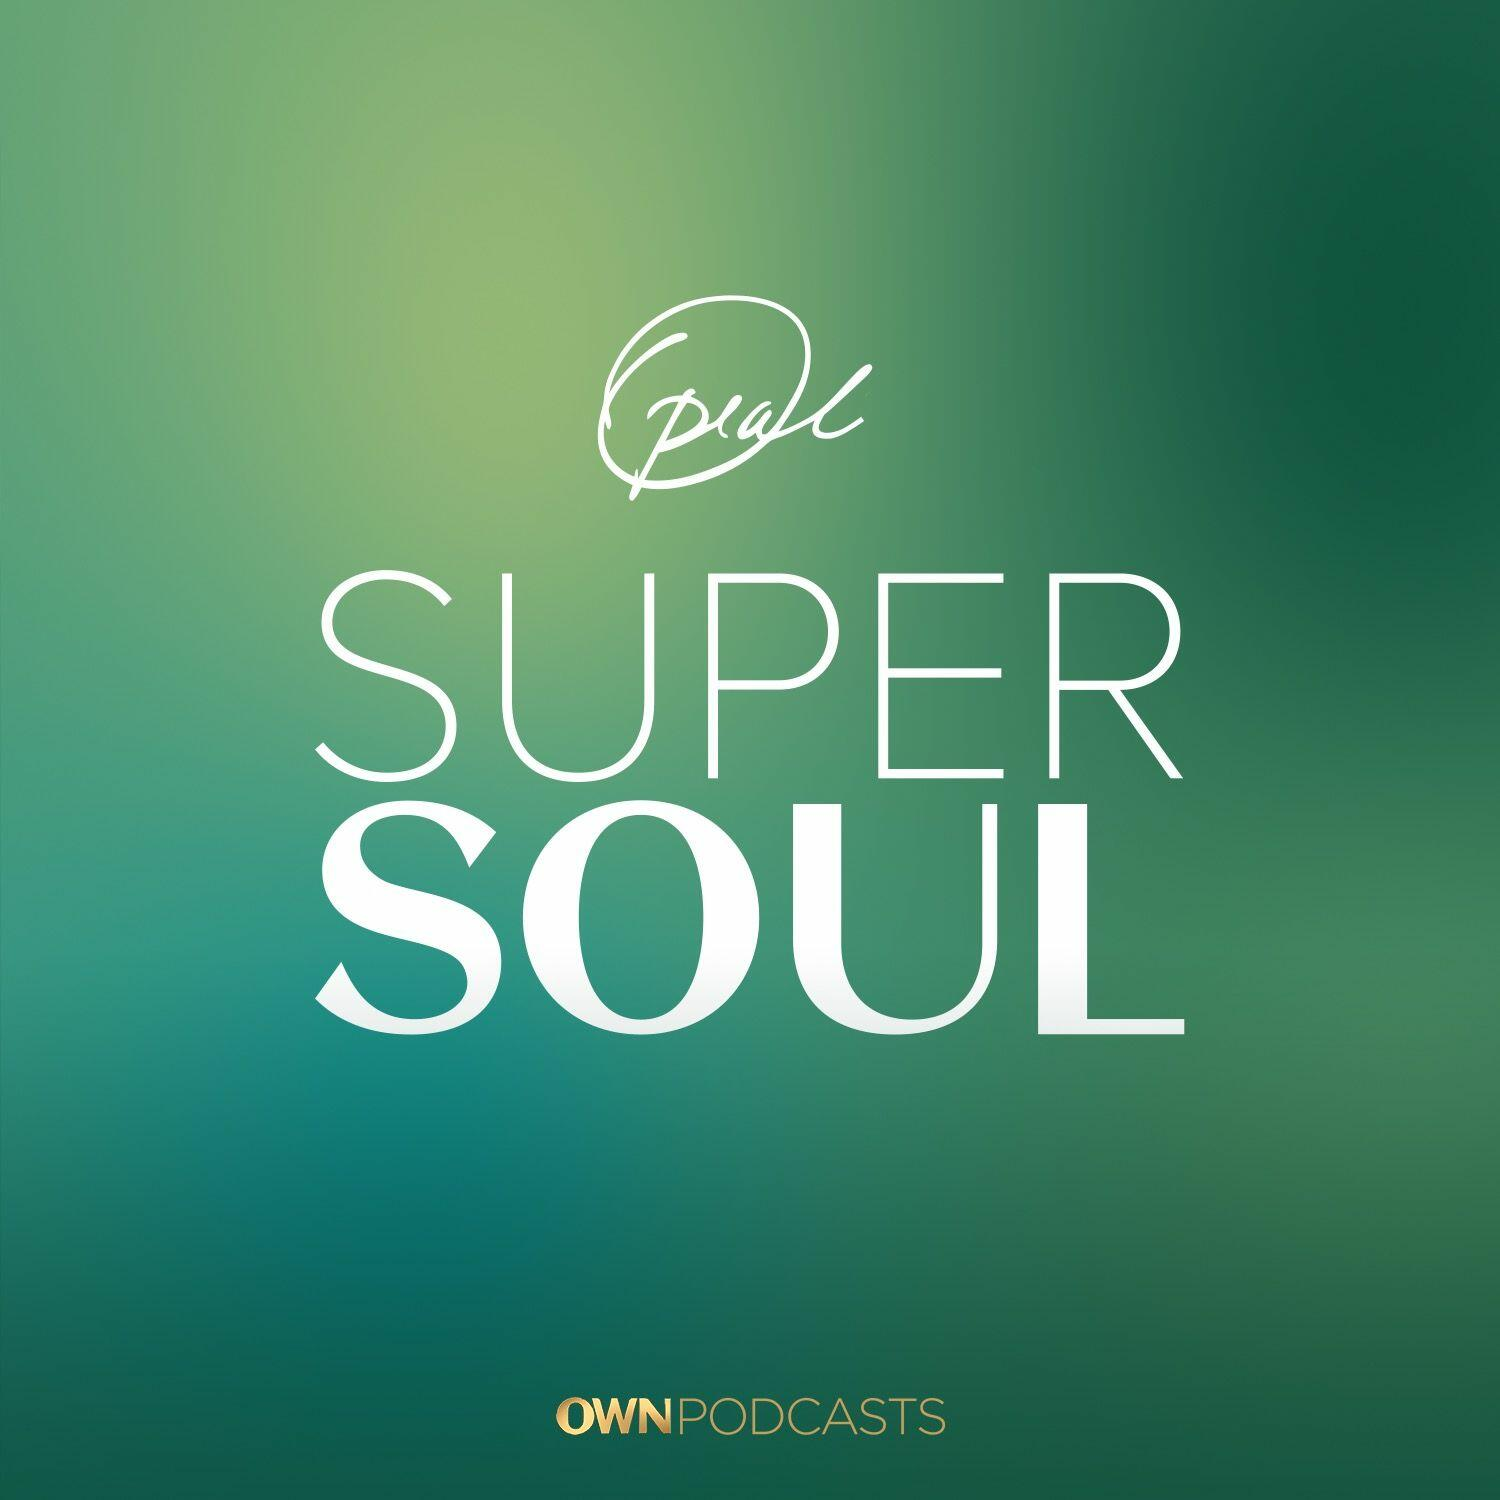 Oprah's SuperSoul -Podcasts to listen to for personal growth